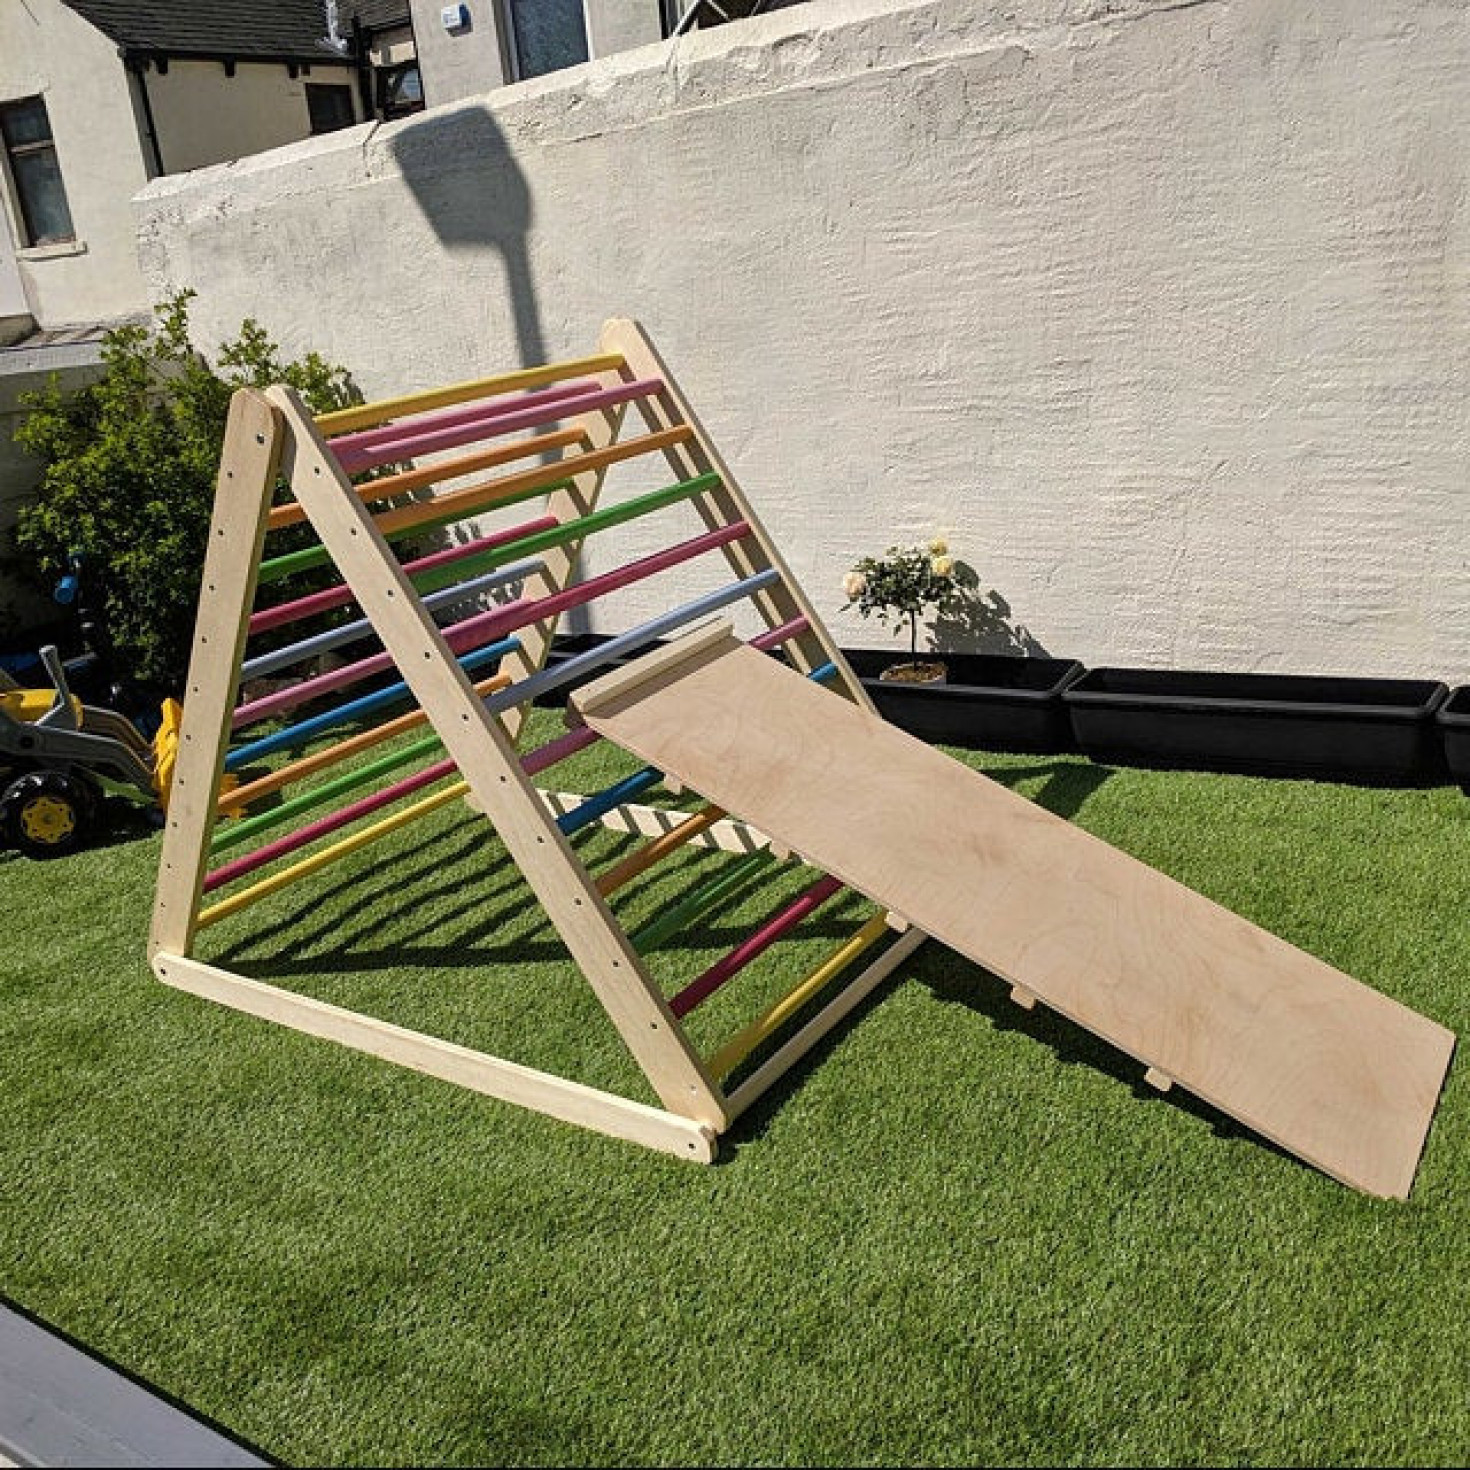 A rainbow-colored wooden climbing frame placed in a garden